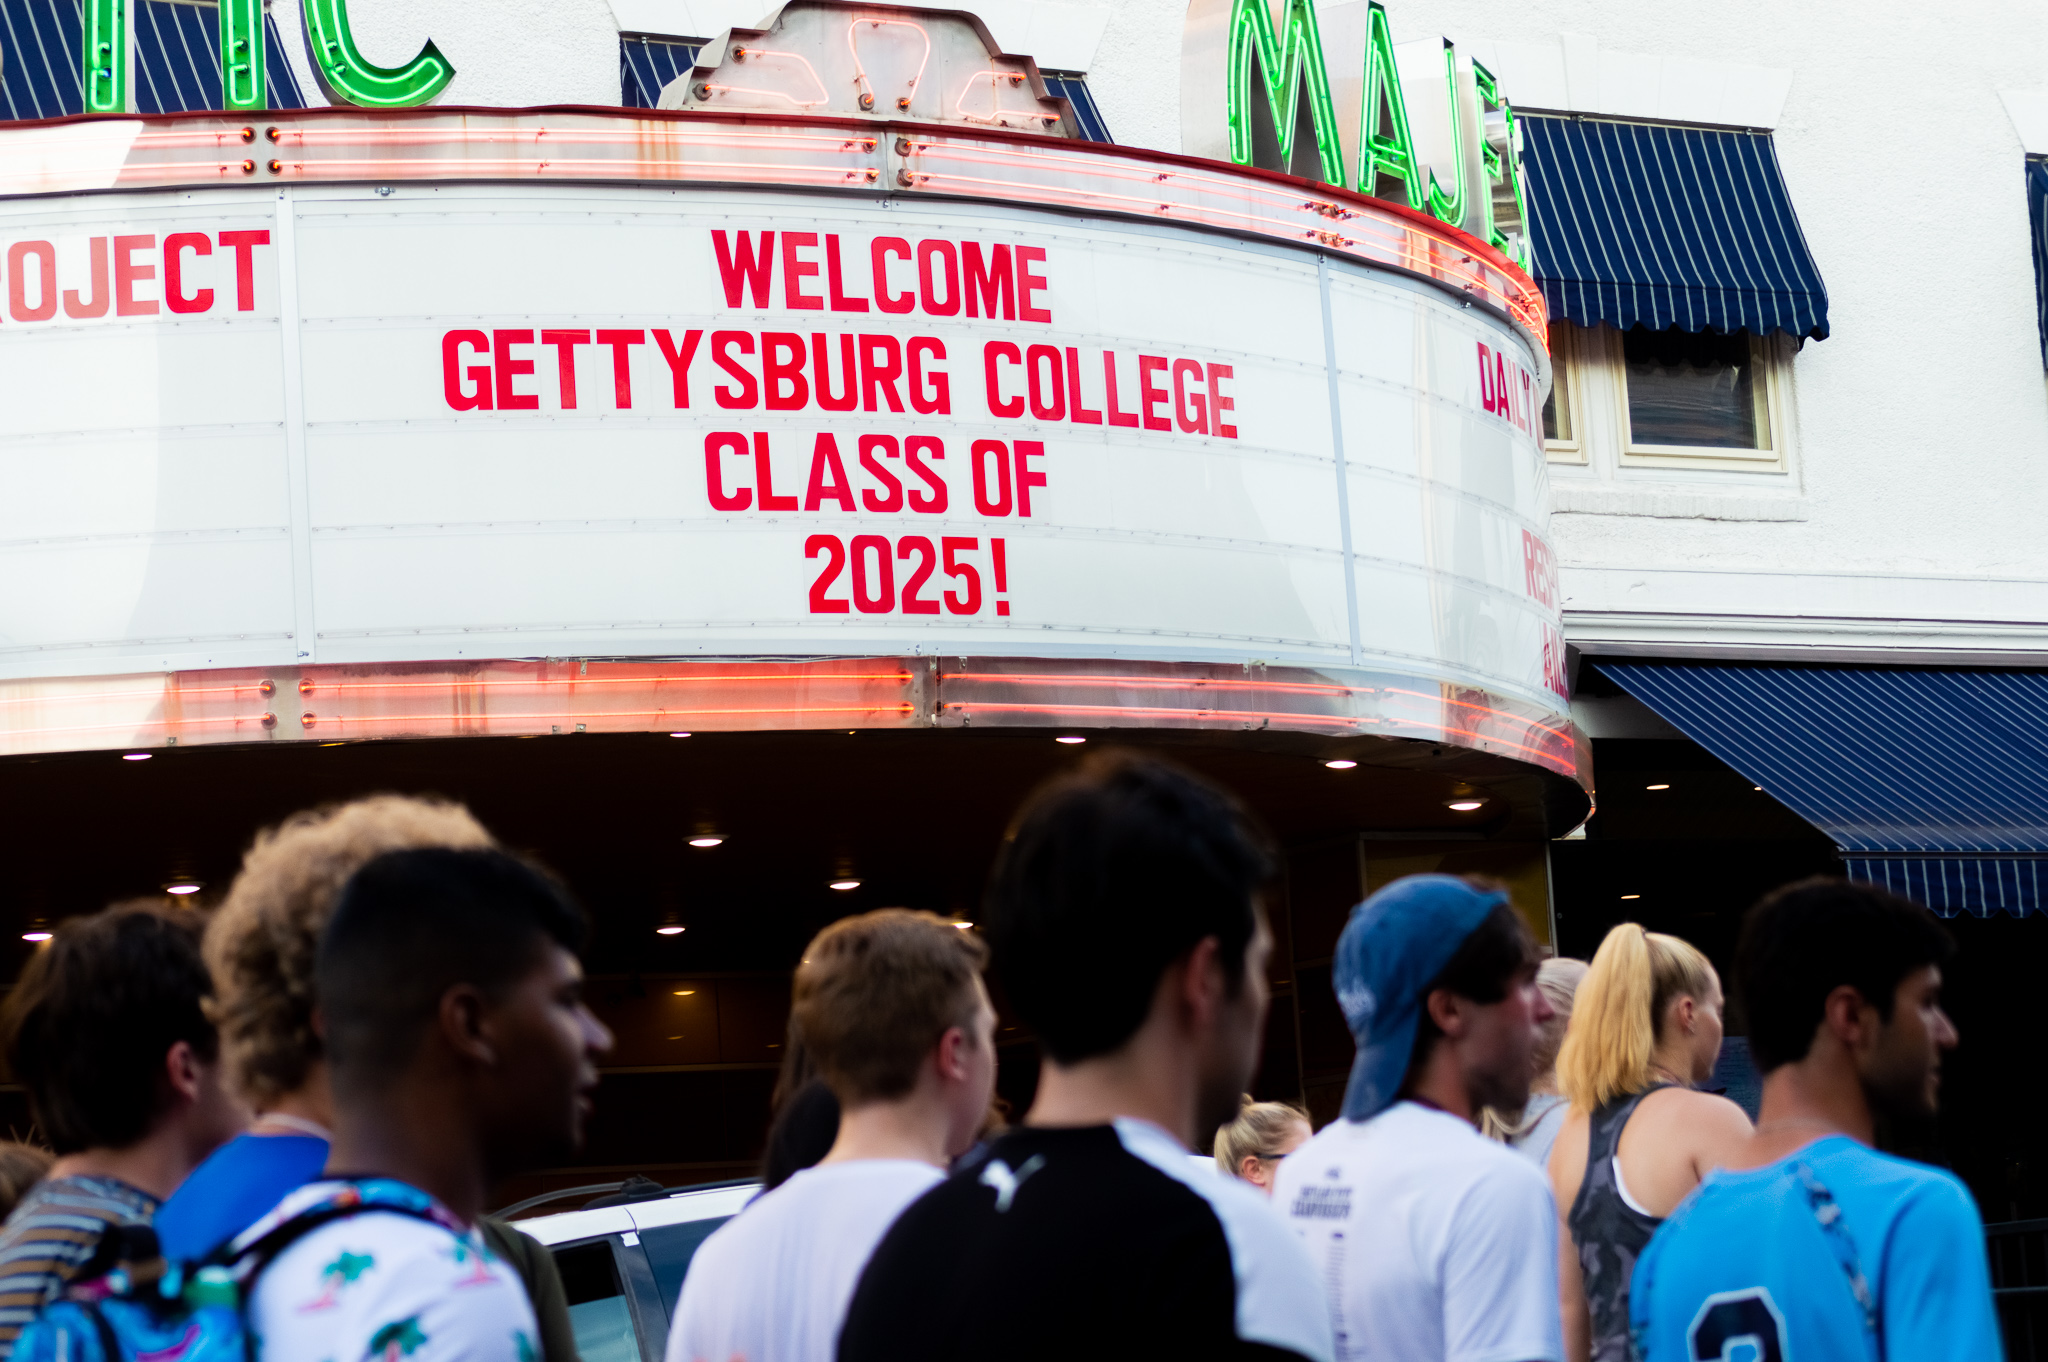 The marquee at the Majestic Theatre welcomes the Class of 2025 to Gettysburg (Photo Aly Wein/The Gettysburgian)